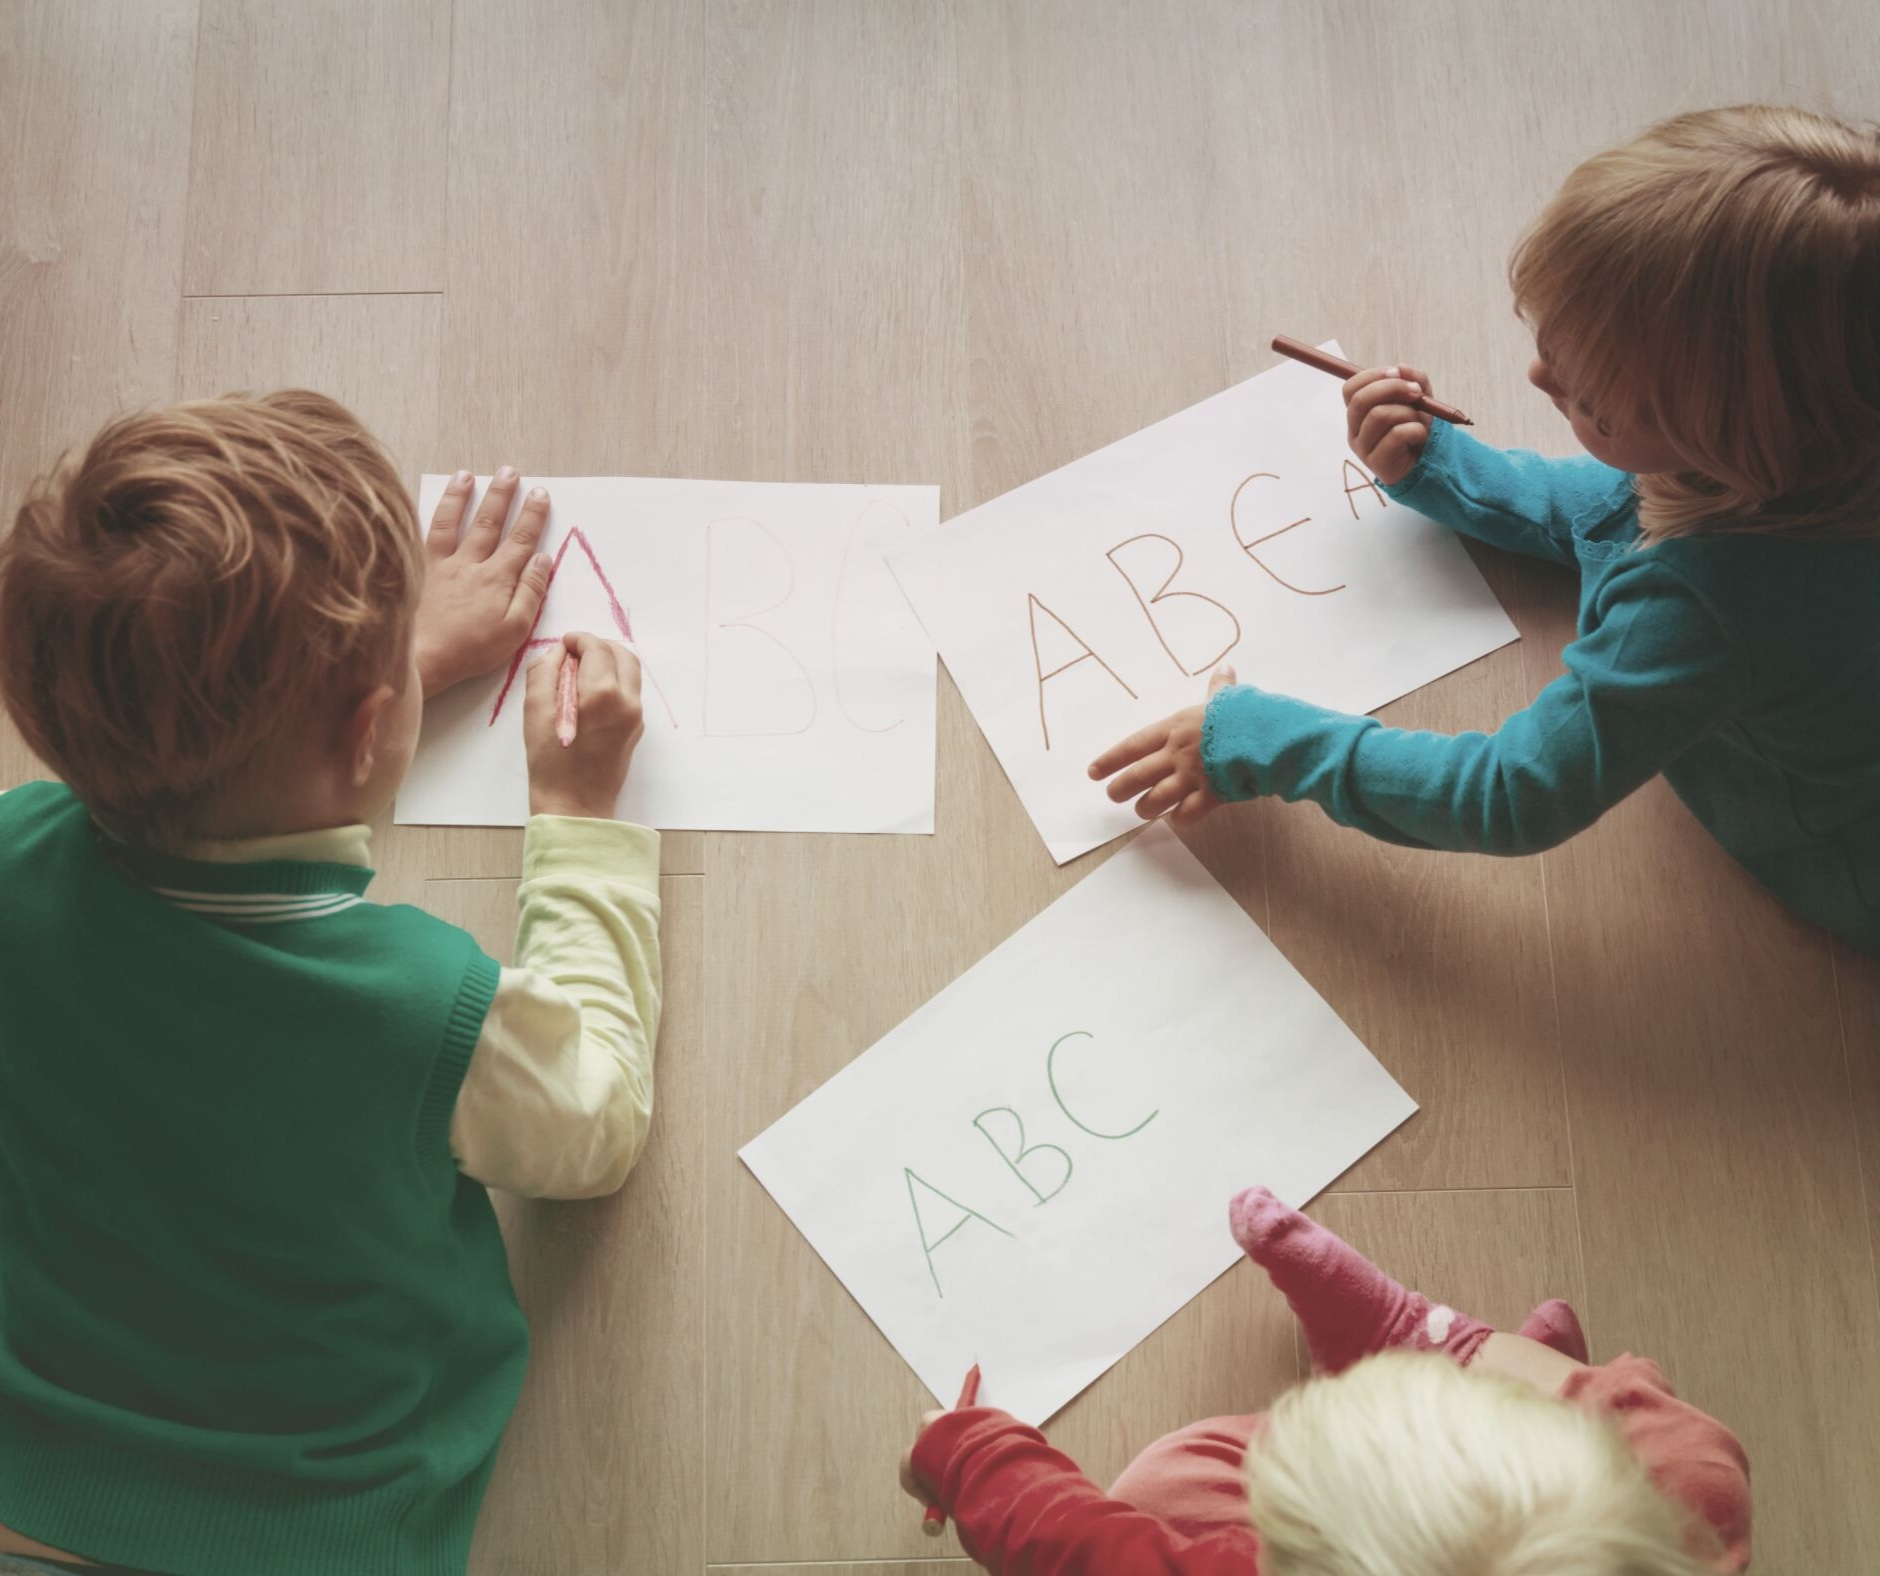 Children practicing their ABCs on the floor